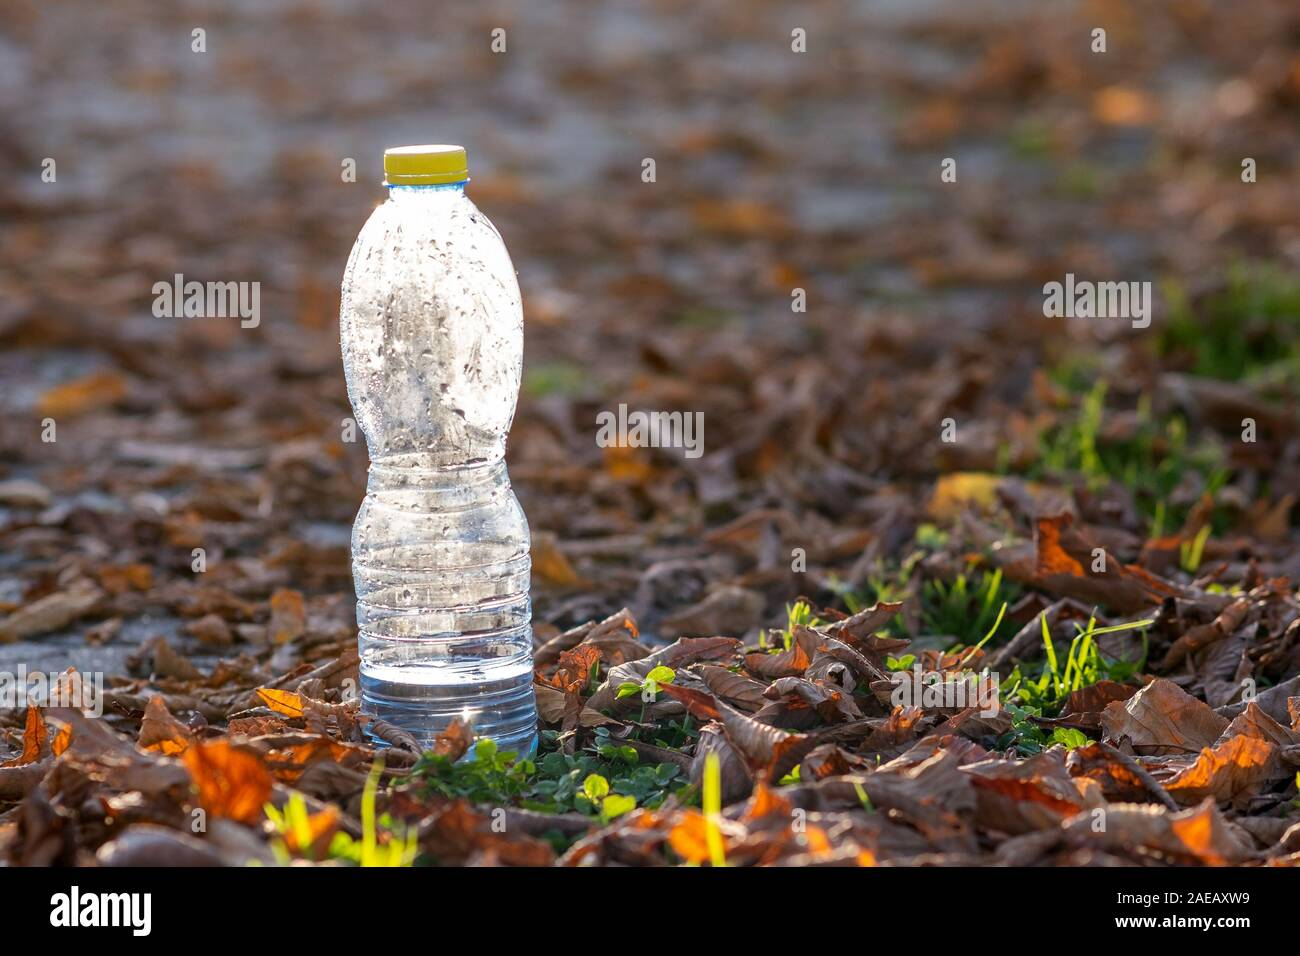 Used plastic bottle thrown away on grass covered ground outdoors. Pollution of nature concept. Stock Photo